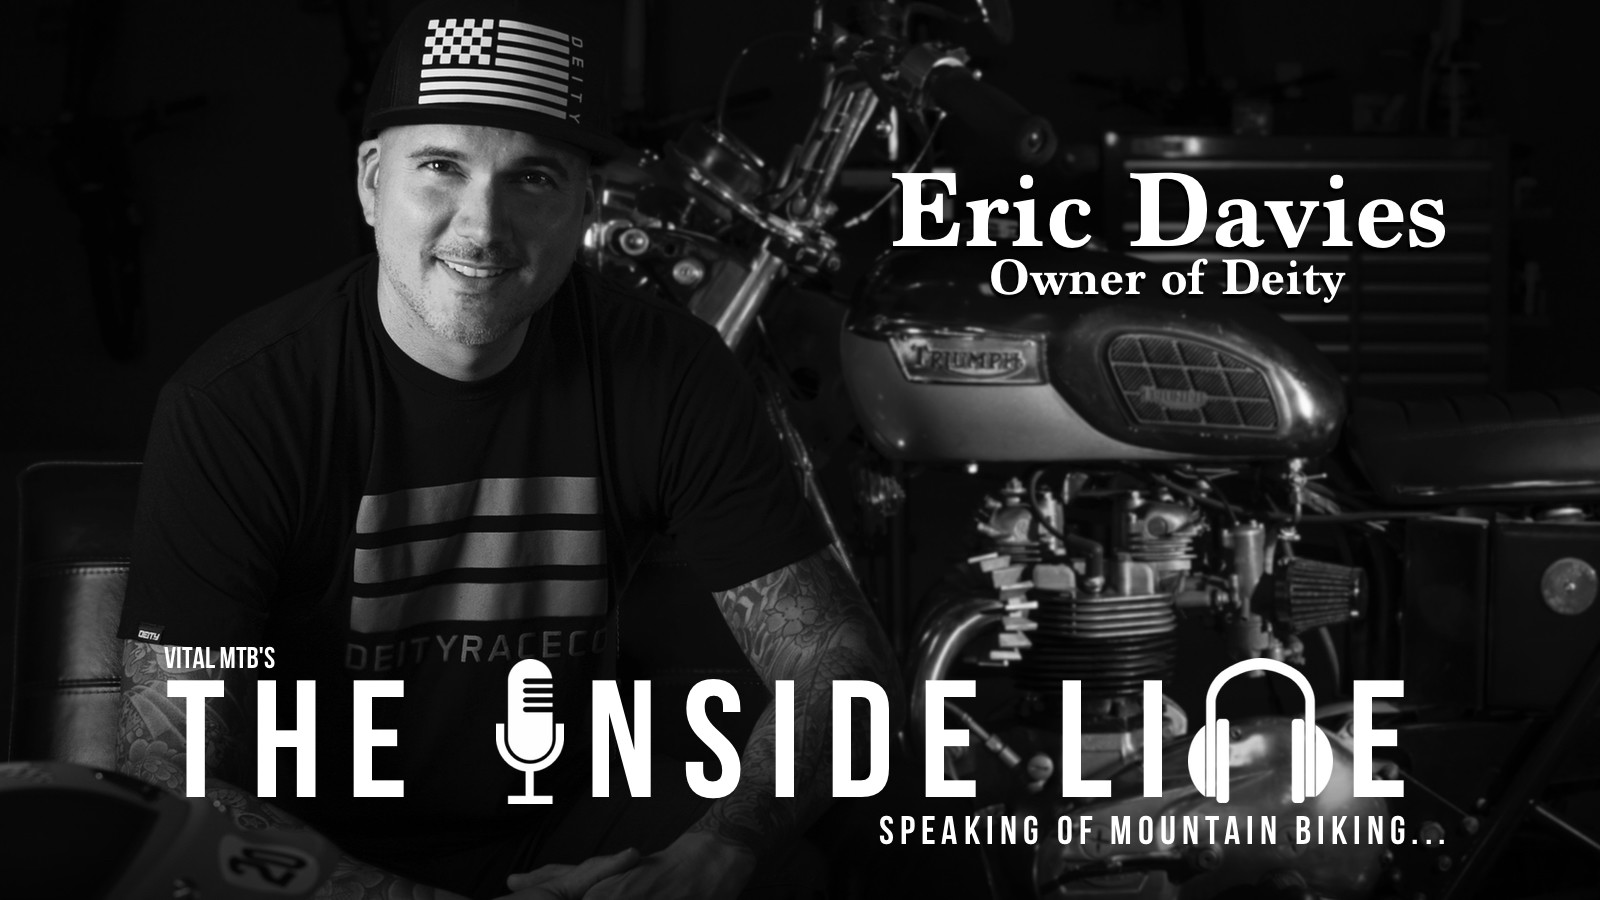 The Inside Line Podcast - Eric Davies of Deity